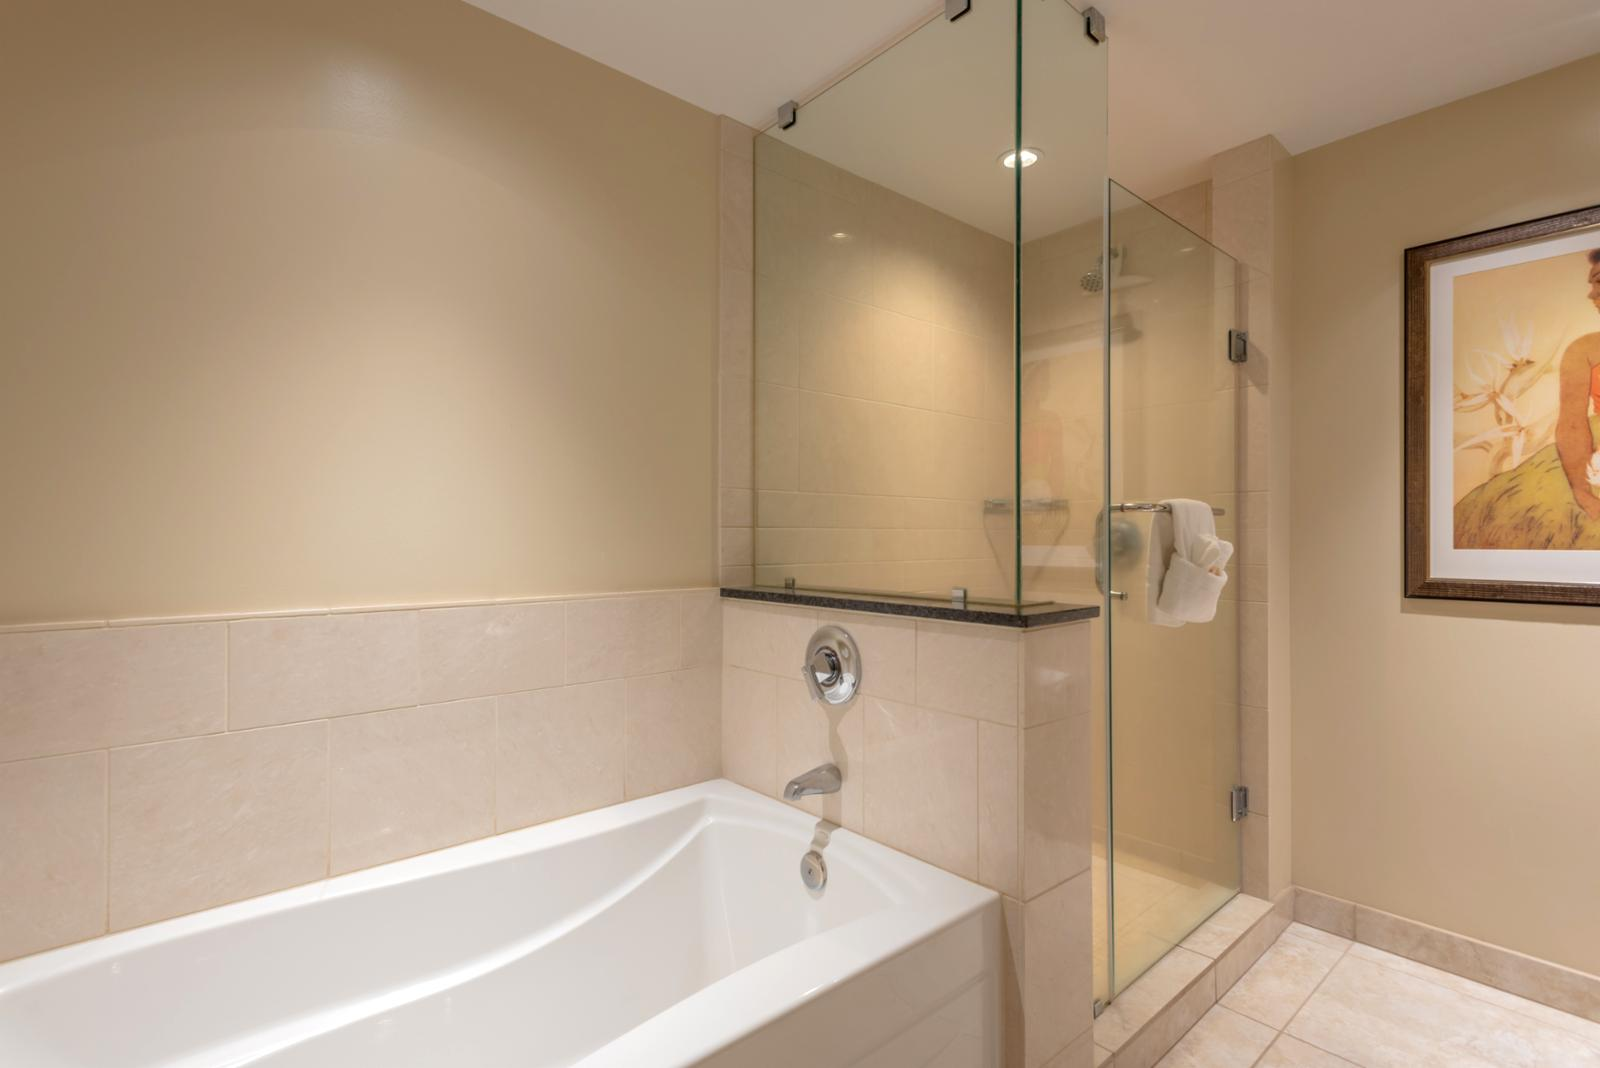 Reverse shot of bathtub and floor to ceiling glass shower